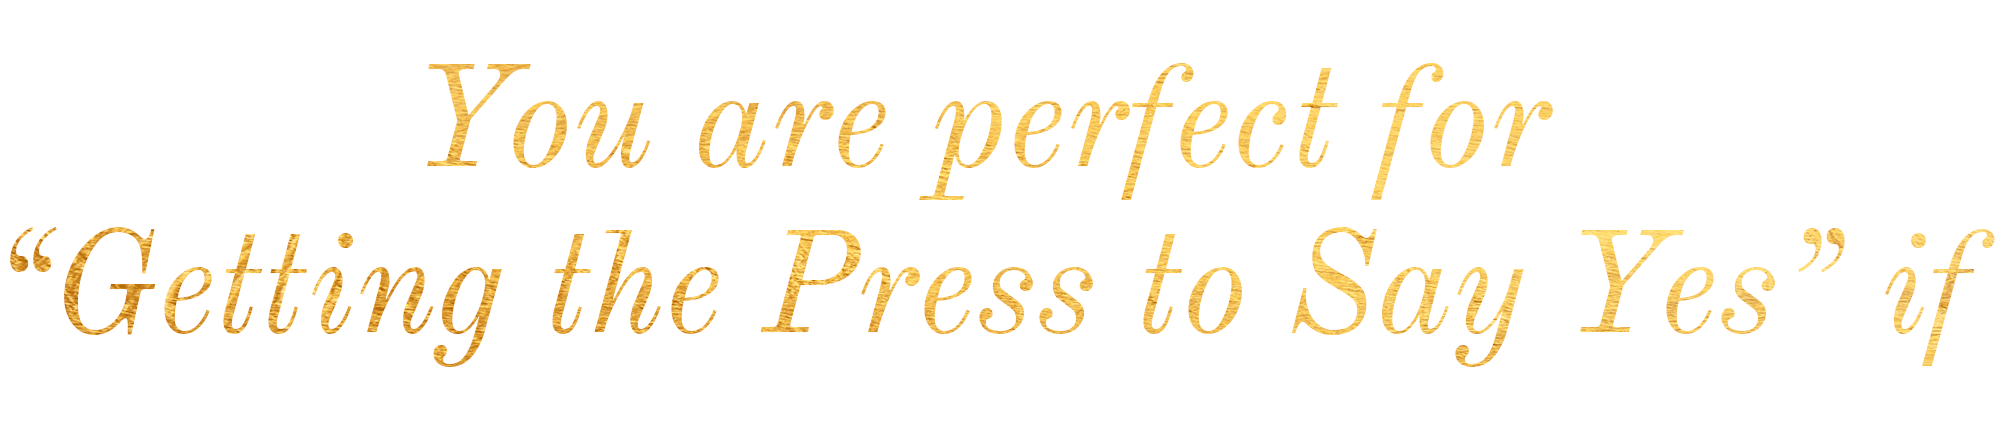 you're-perfect-for-getting-the-press-to-say-yes-if.png